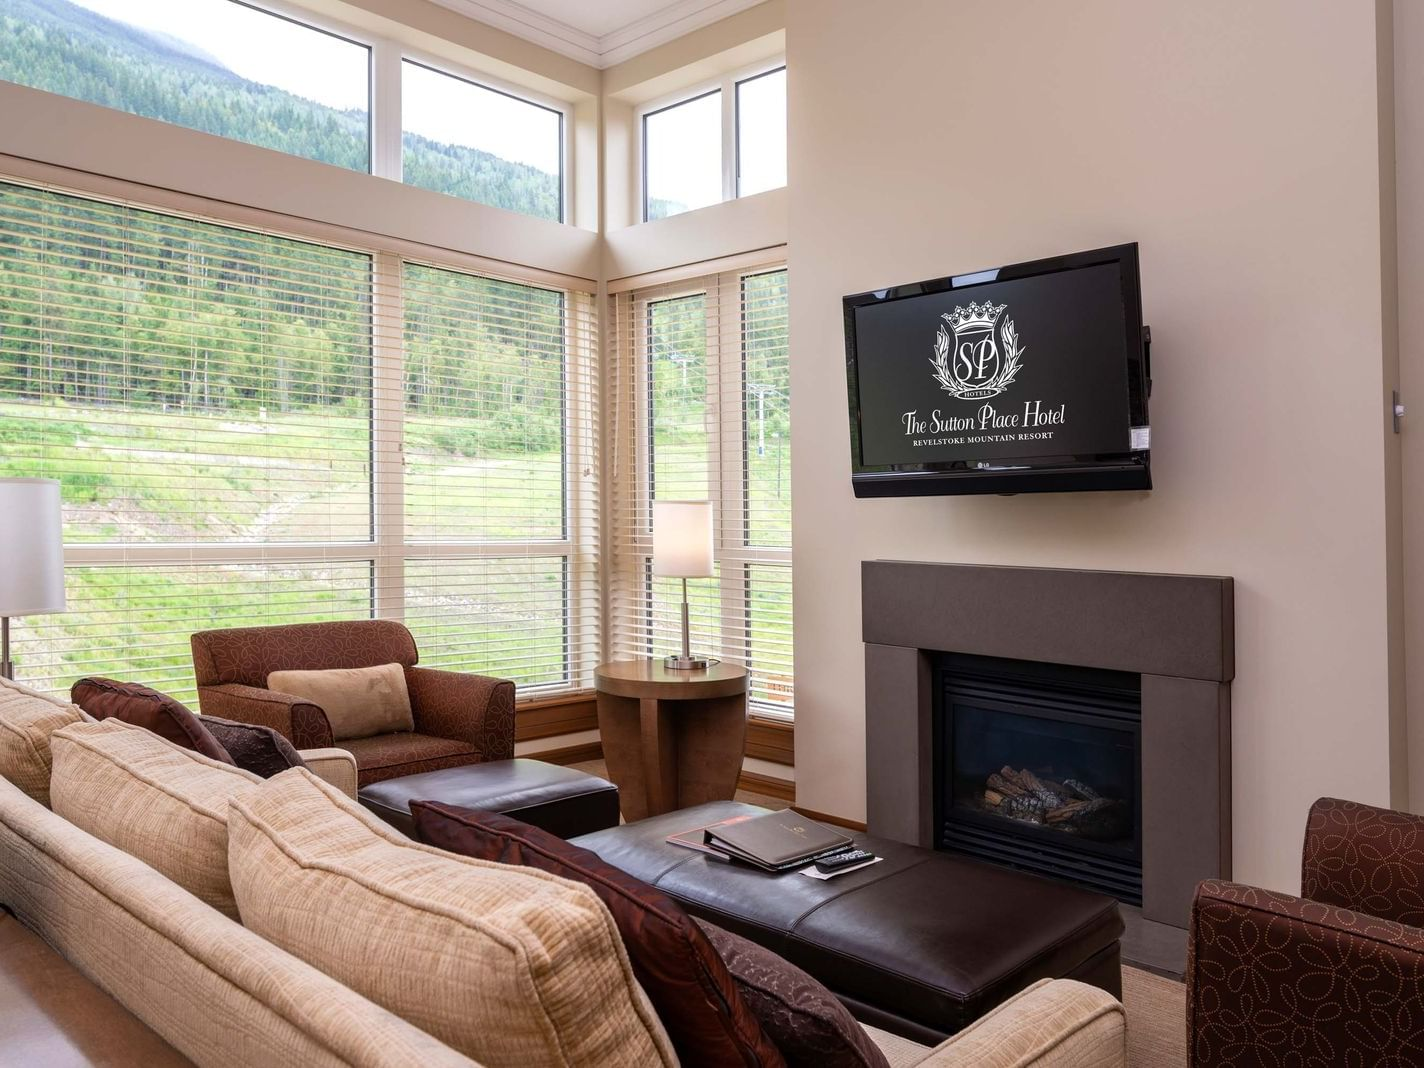 Two Bedroom Premium Suite The Sutton Place Hotel Revelstoke Mountain Resort